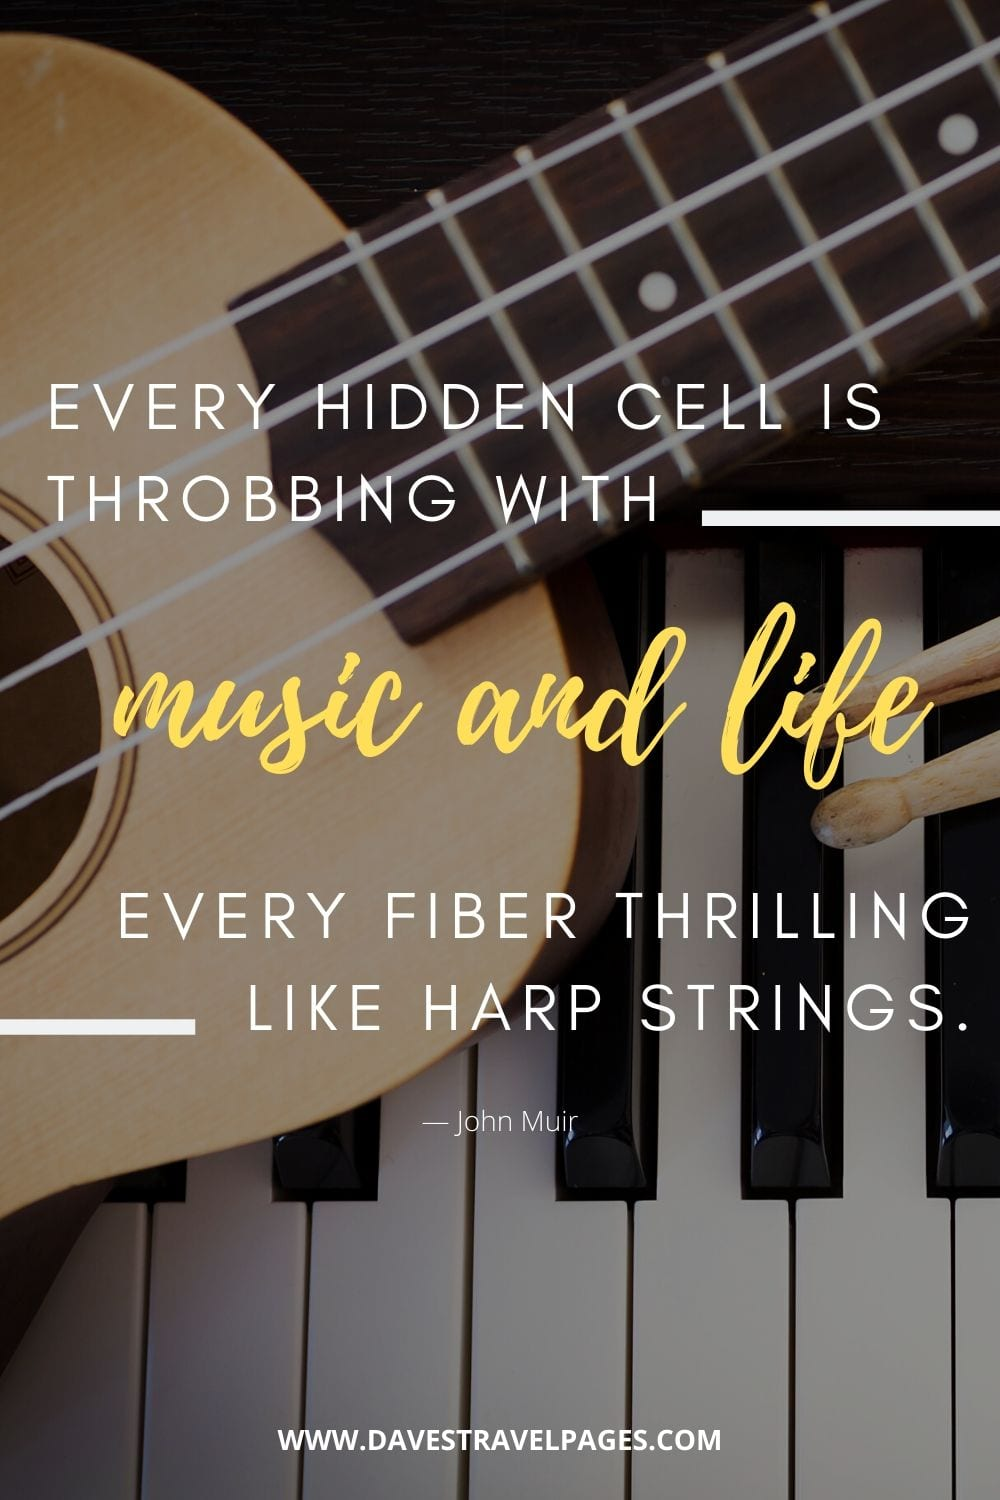 """""""Every hidden cell is throbbing with music and life, every fiber thrilling like harp strings.""""― John Muir"""